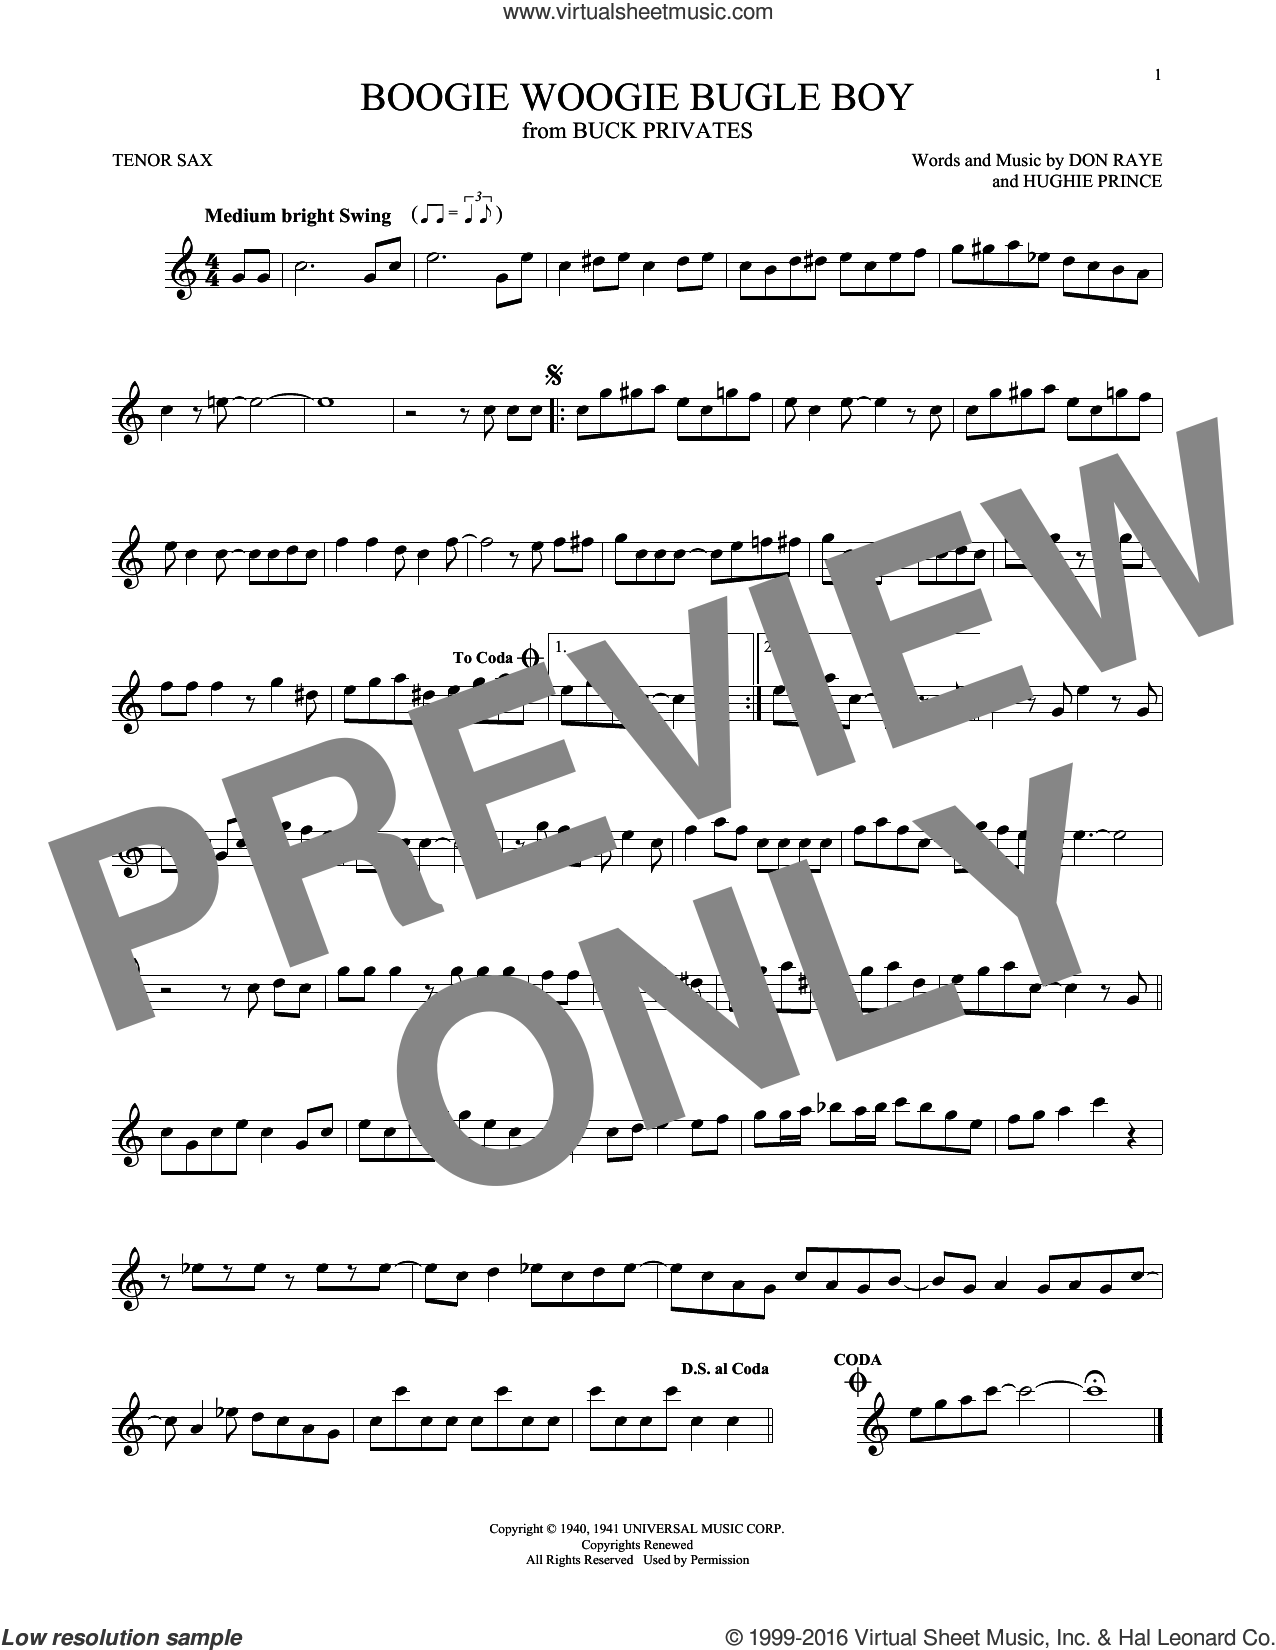 Boogie Woogie Bugle Boy sheet music for tenor saxophone solo by Hughie Prince